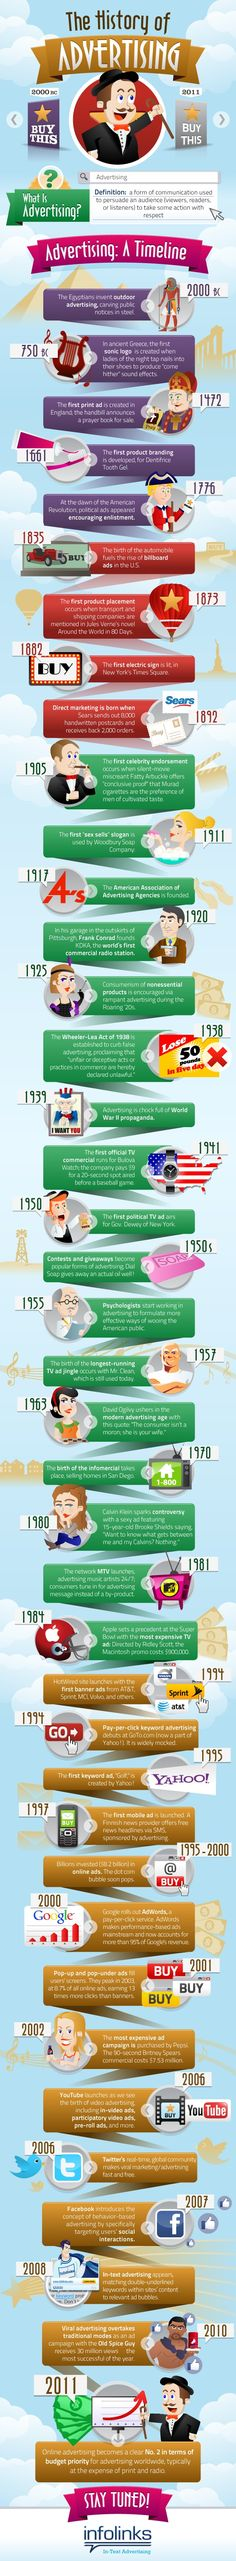 The History of Advertising